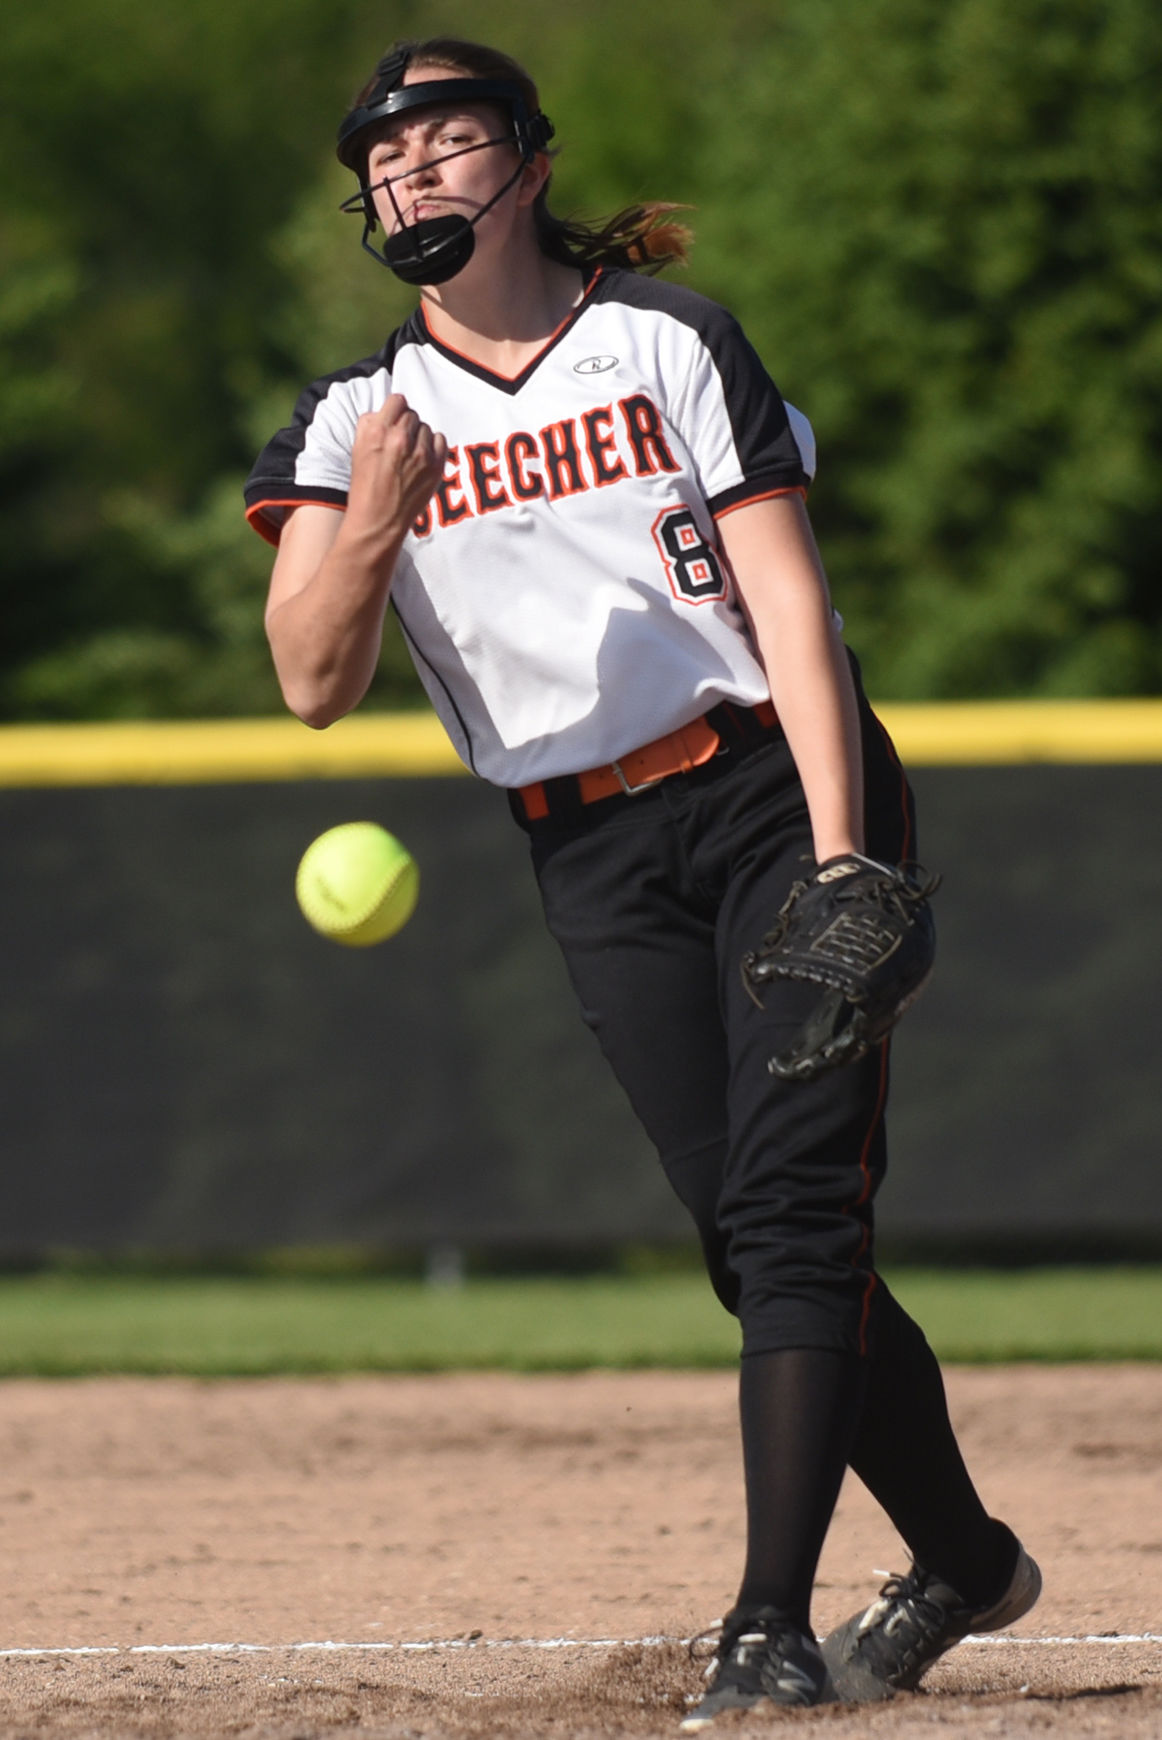 SOFTBALL: Beecher's Kayla Hon named Daily Journal Co-Player of the Year